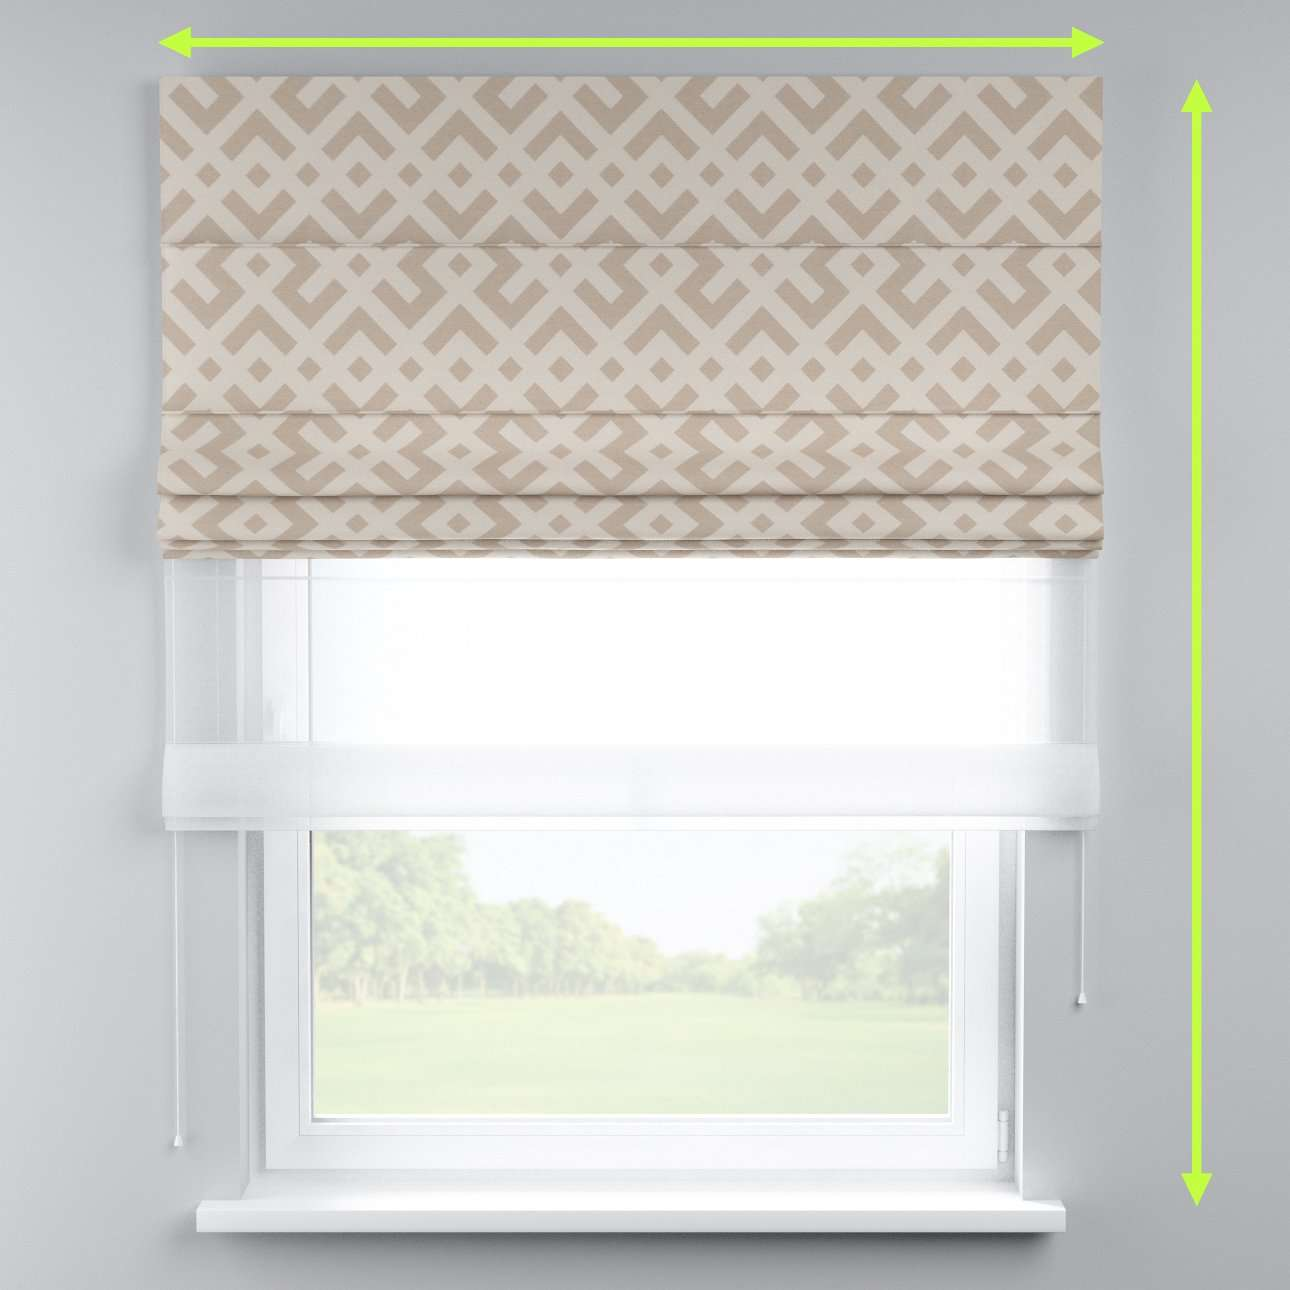 Voile and fabric roman blind (DUO II) in collection Rustica, fabric: 140-59